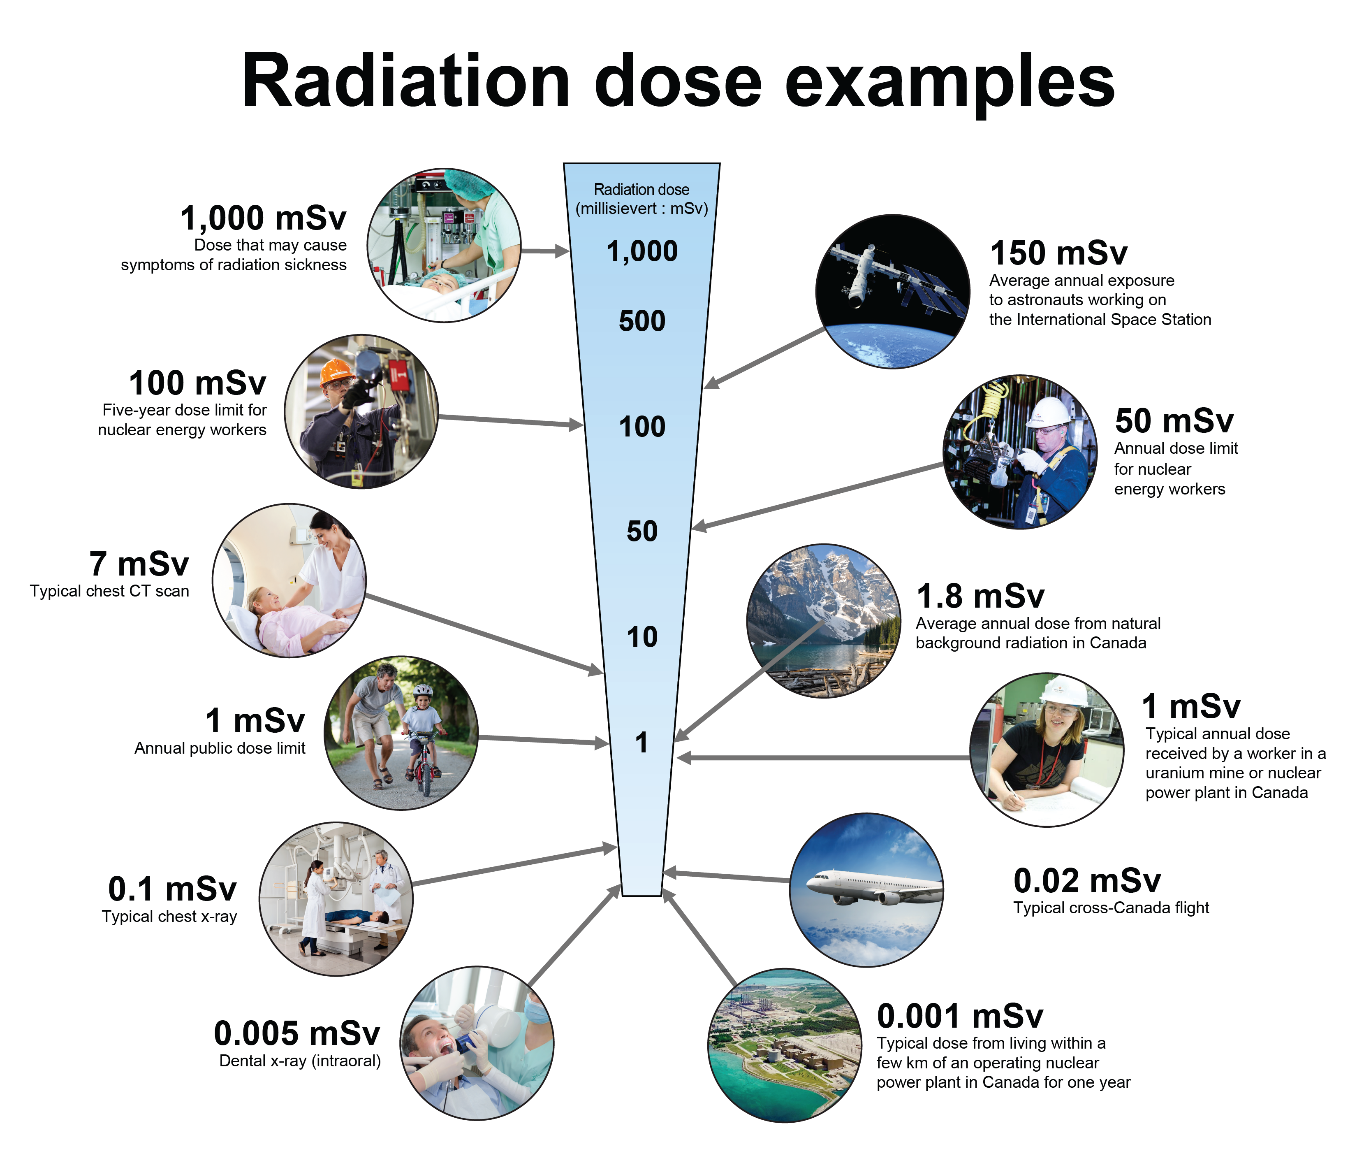 Radiation dose examples. Text version below.